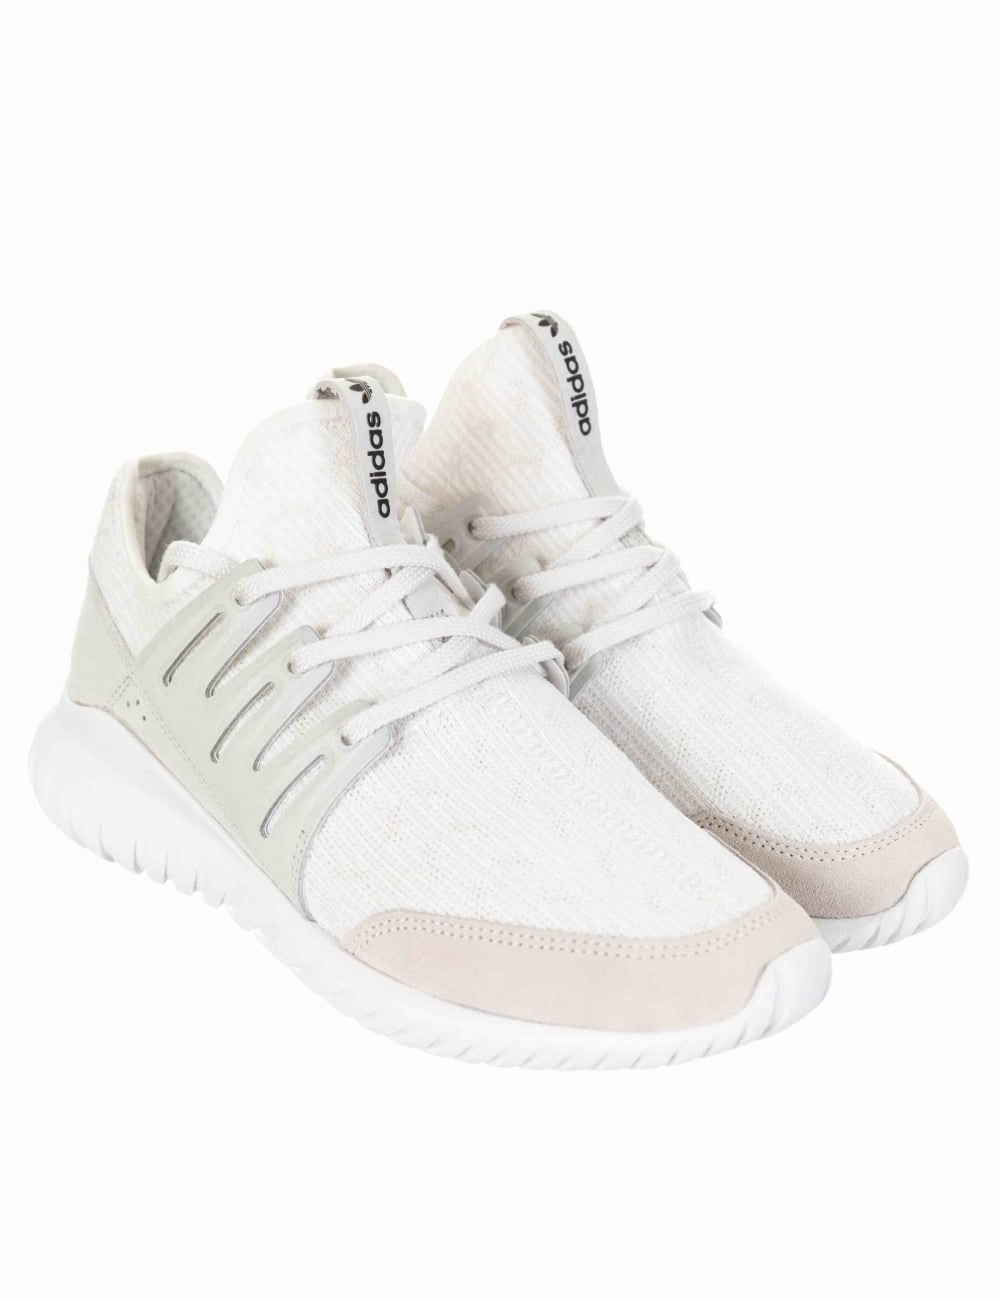 adidas originals tubular radial trainers in white